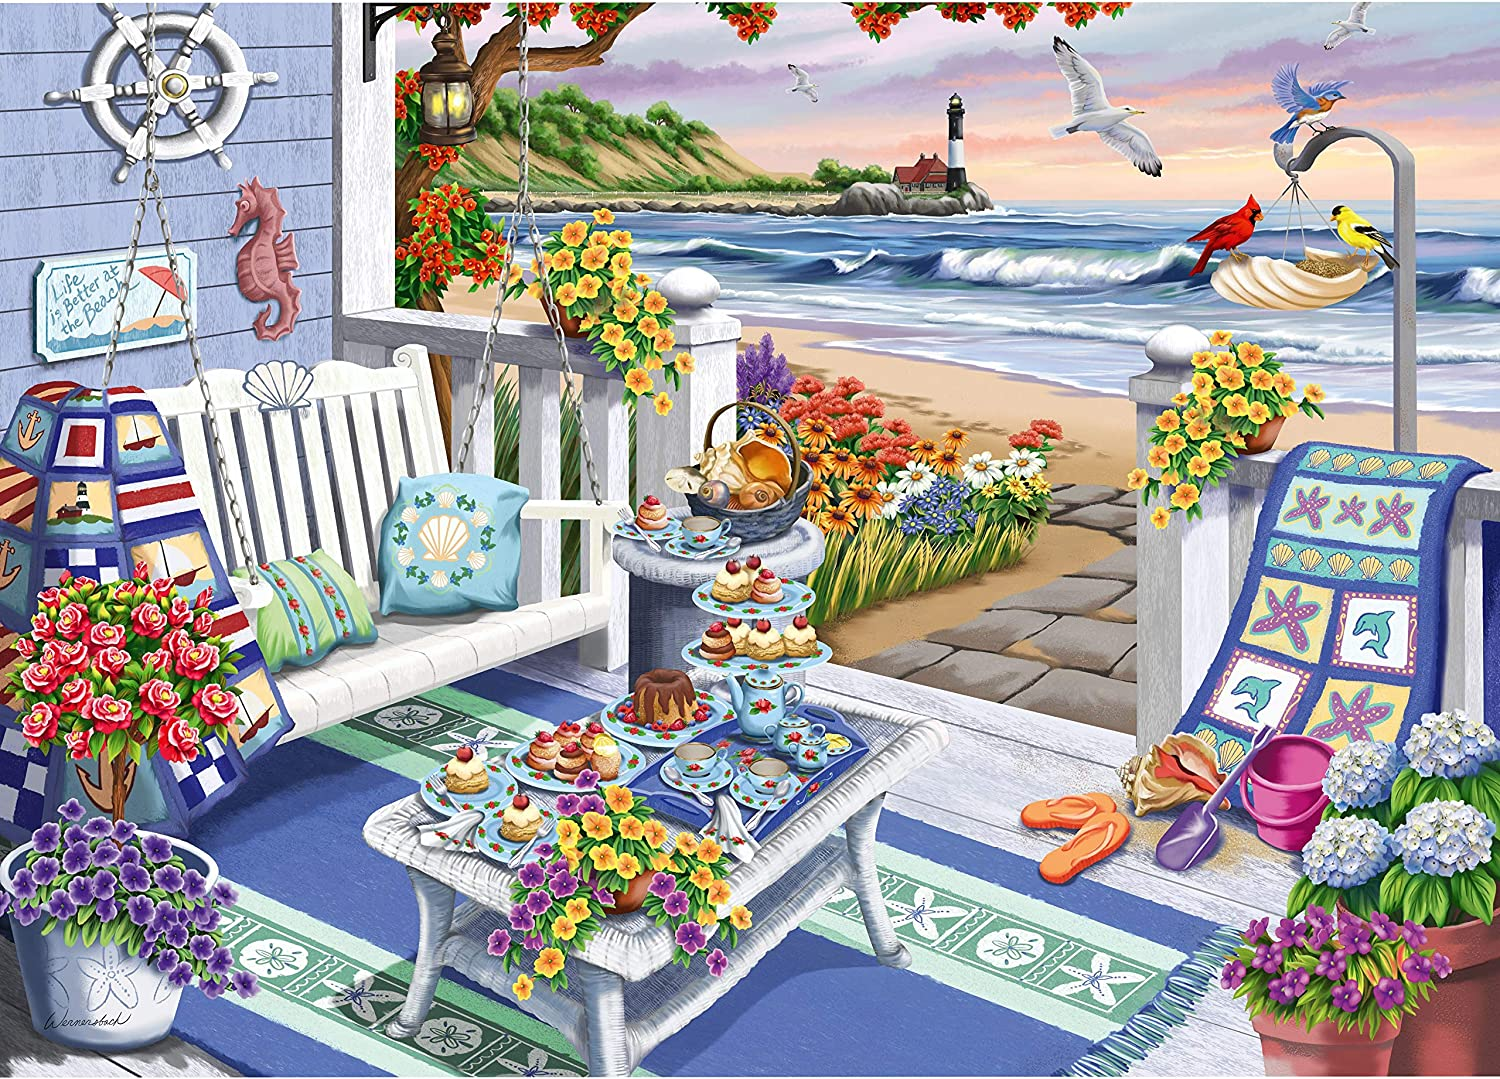 Ravensburger Cozy Series: Seaside Sunshine 300 Piece Large Format Jigsaw Puzzle for Adults - Every Piece is Unique, Softclick Technology Means Pieces Fit Together Perfectly